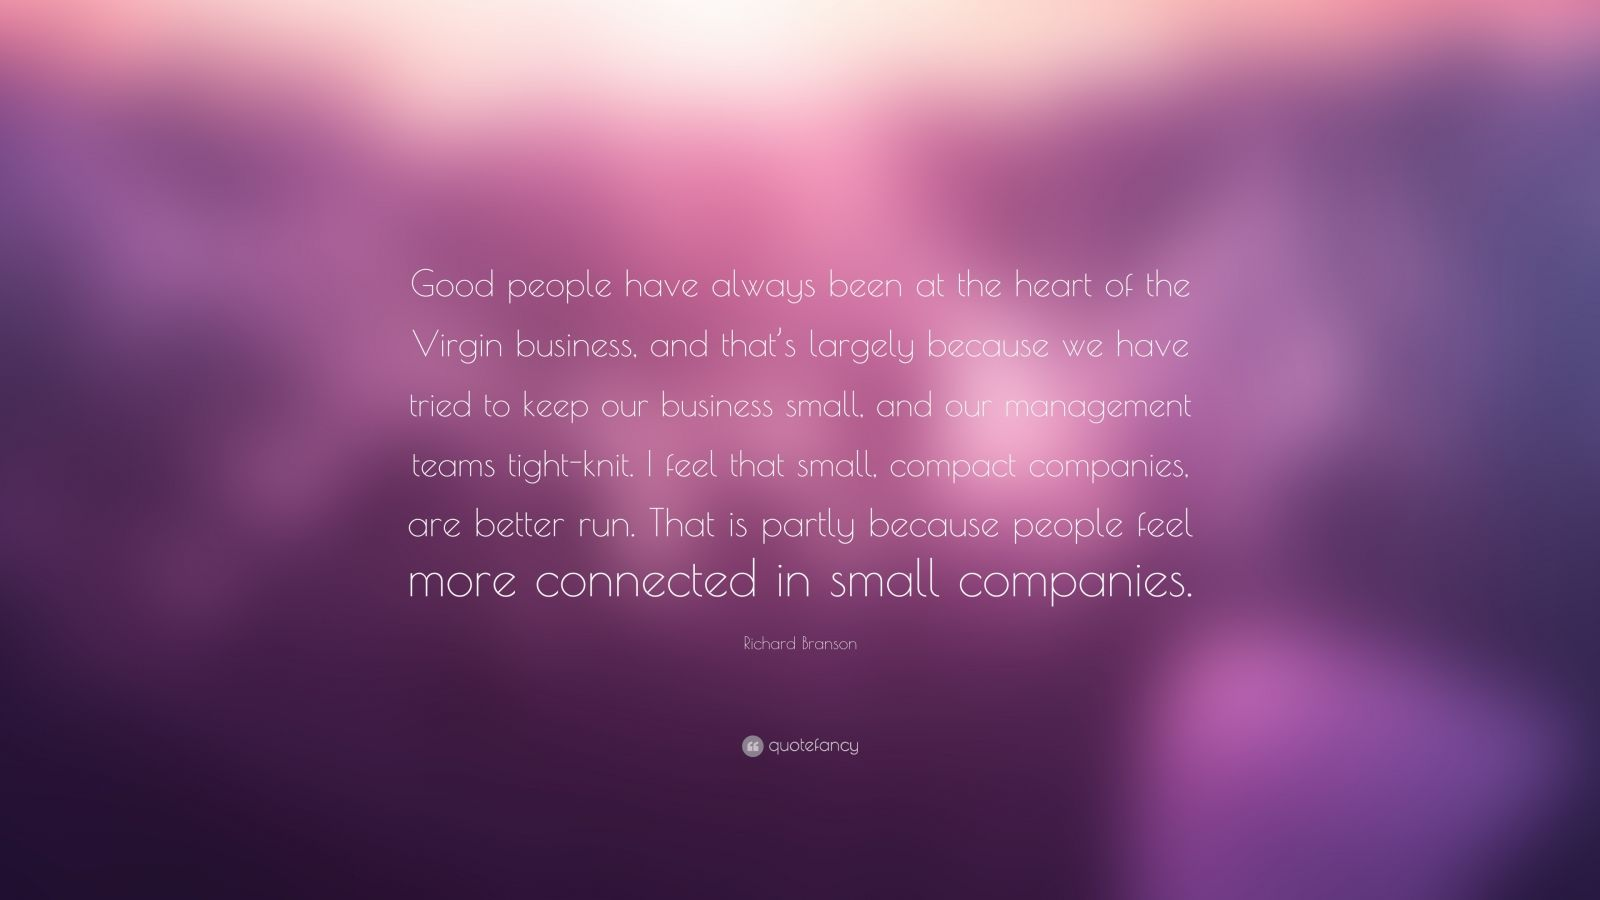 "Richard Branson Quote: ""Good people have always been at the heart of the Virgin business, and that's largely because we have tried to keep our business small, and our management teams tight-knit. I feel that small, compact companies, are better run. That is partly because people feel more connected in small companies."""